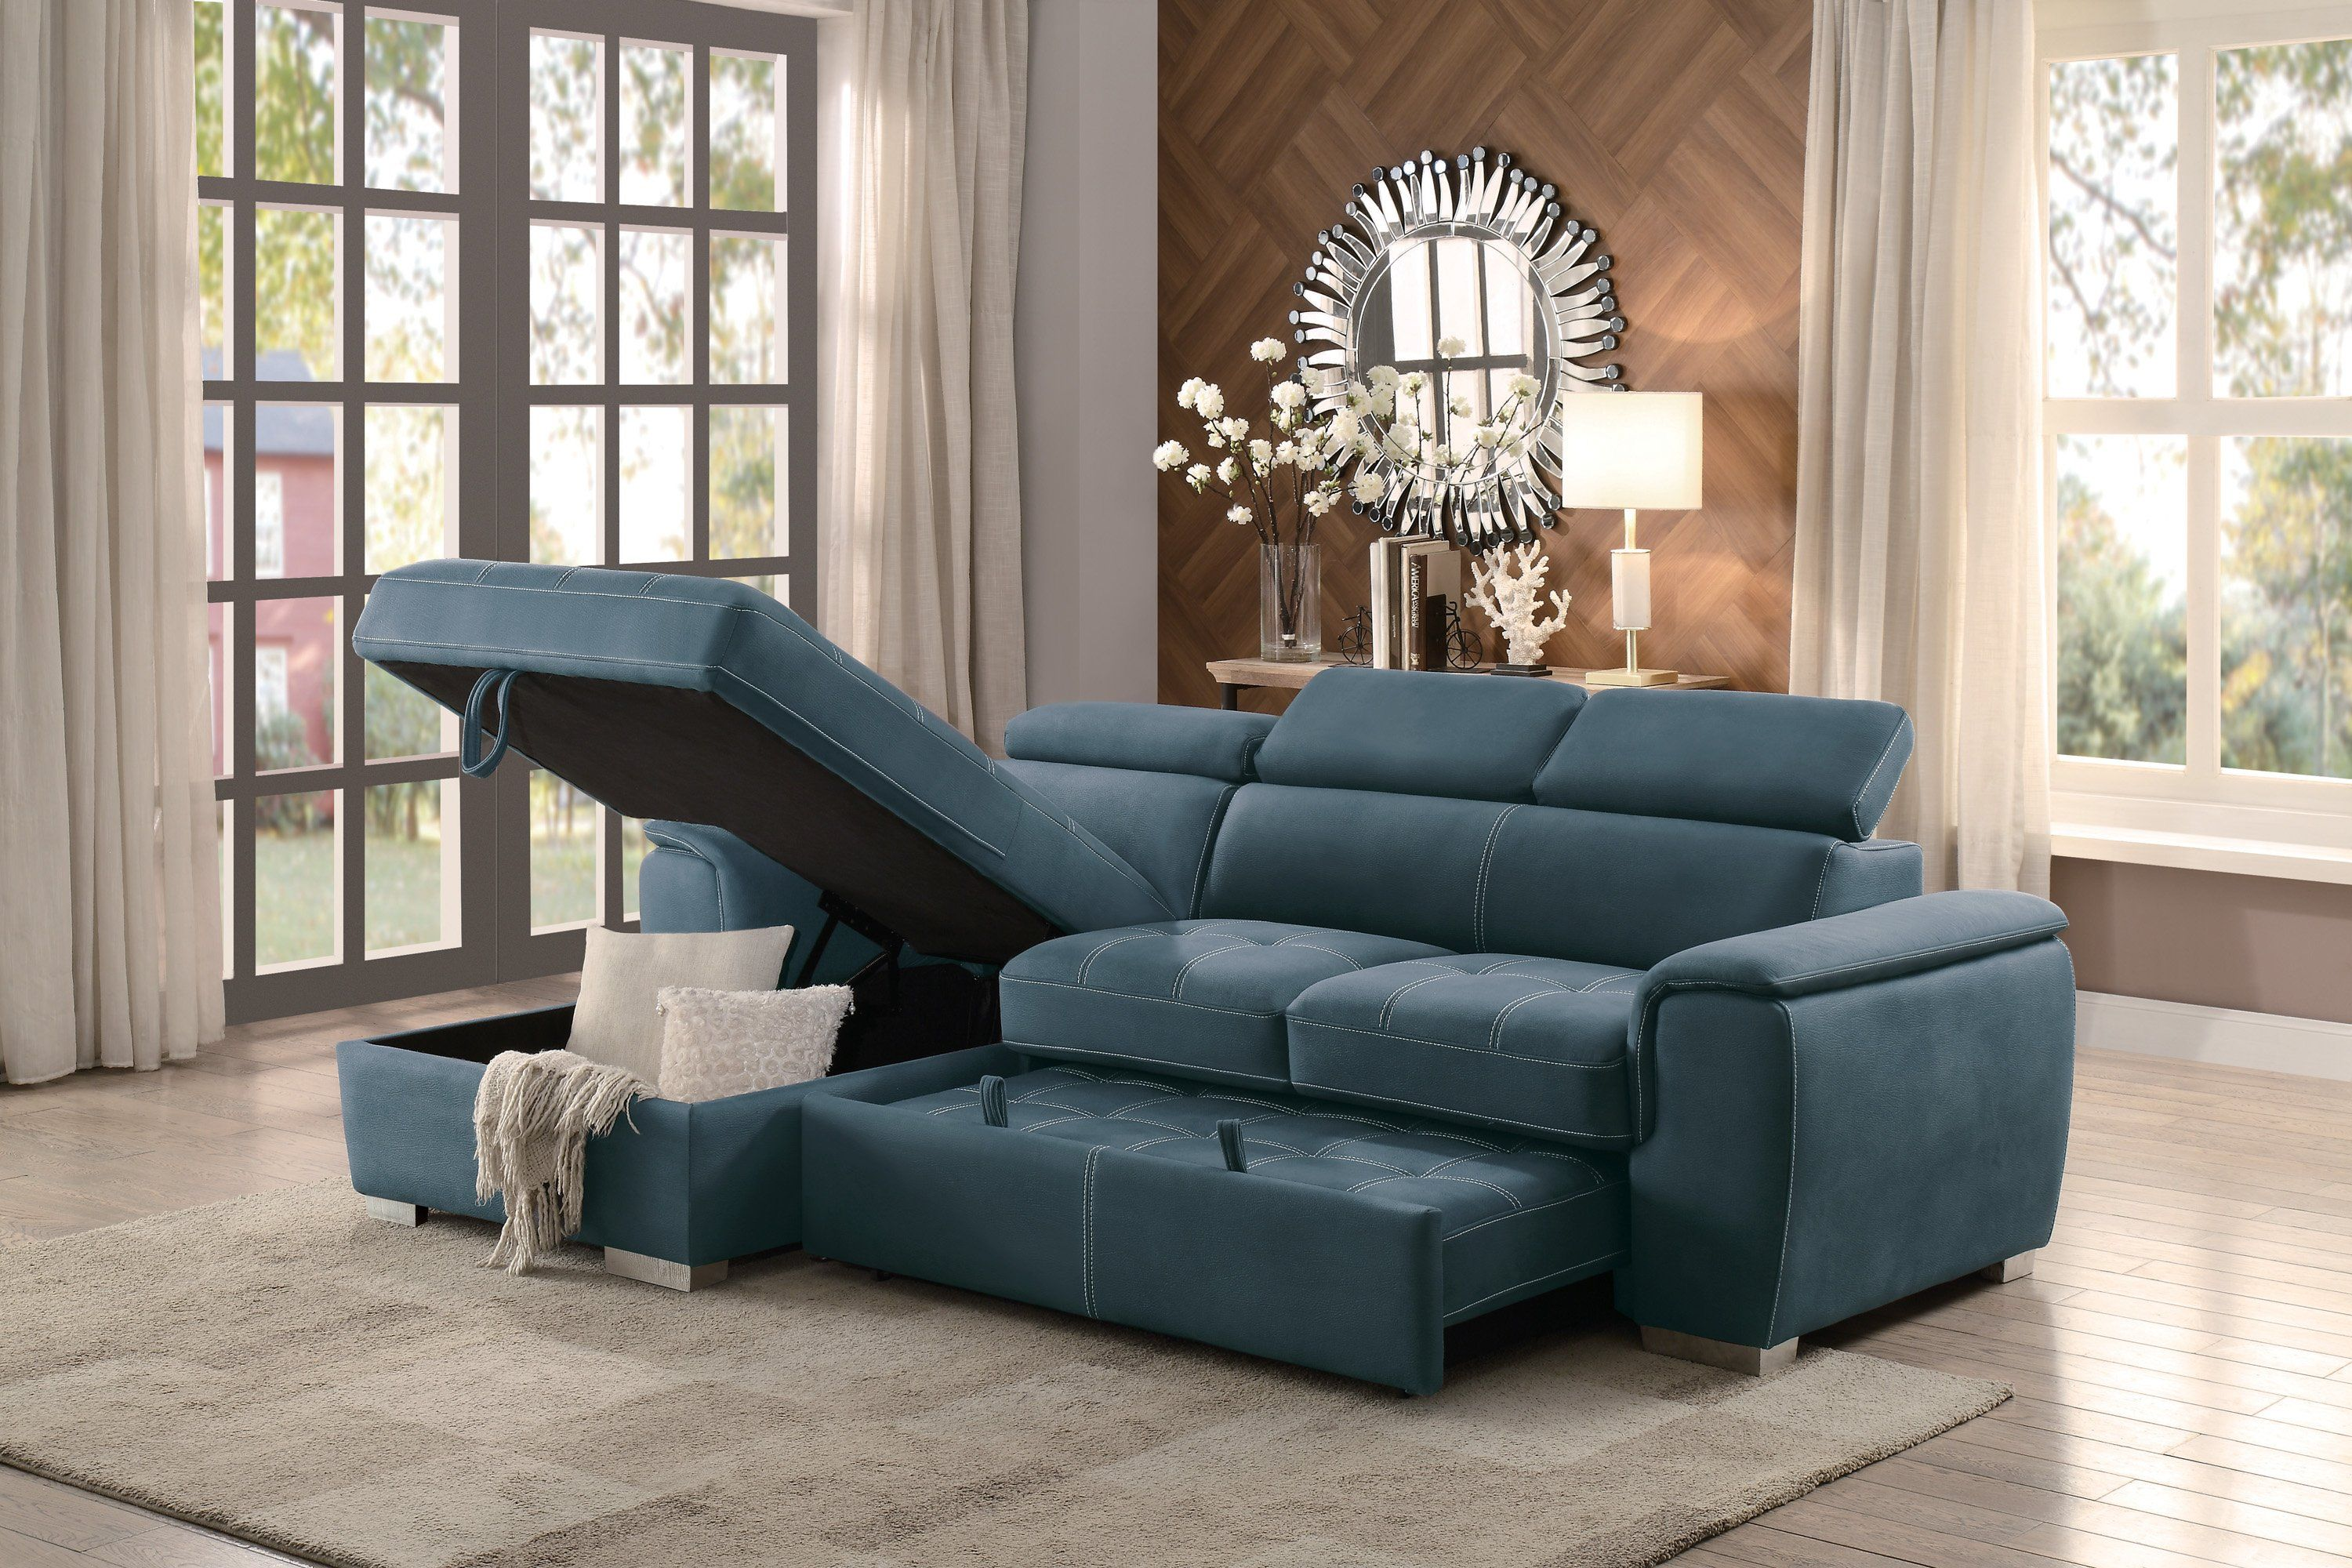 Blue Sectional Sofa With Pullout Sofa Bed And Left Side Storage Sofa Bed With Chaise Sectional Sofa Sofa Bed Dimensions